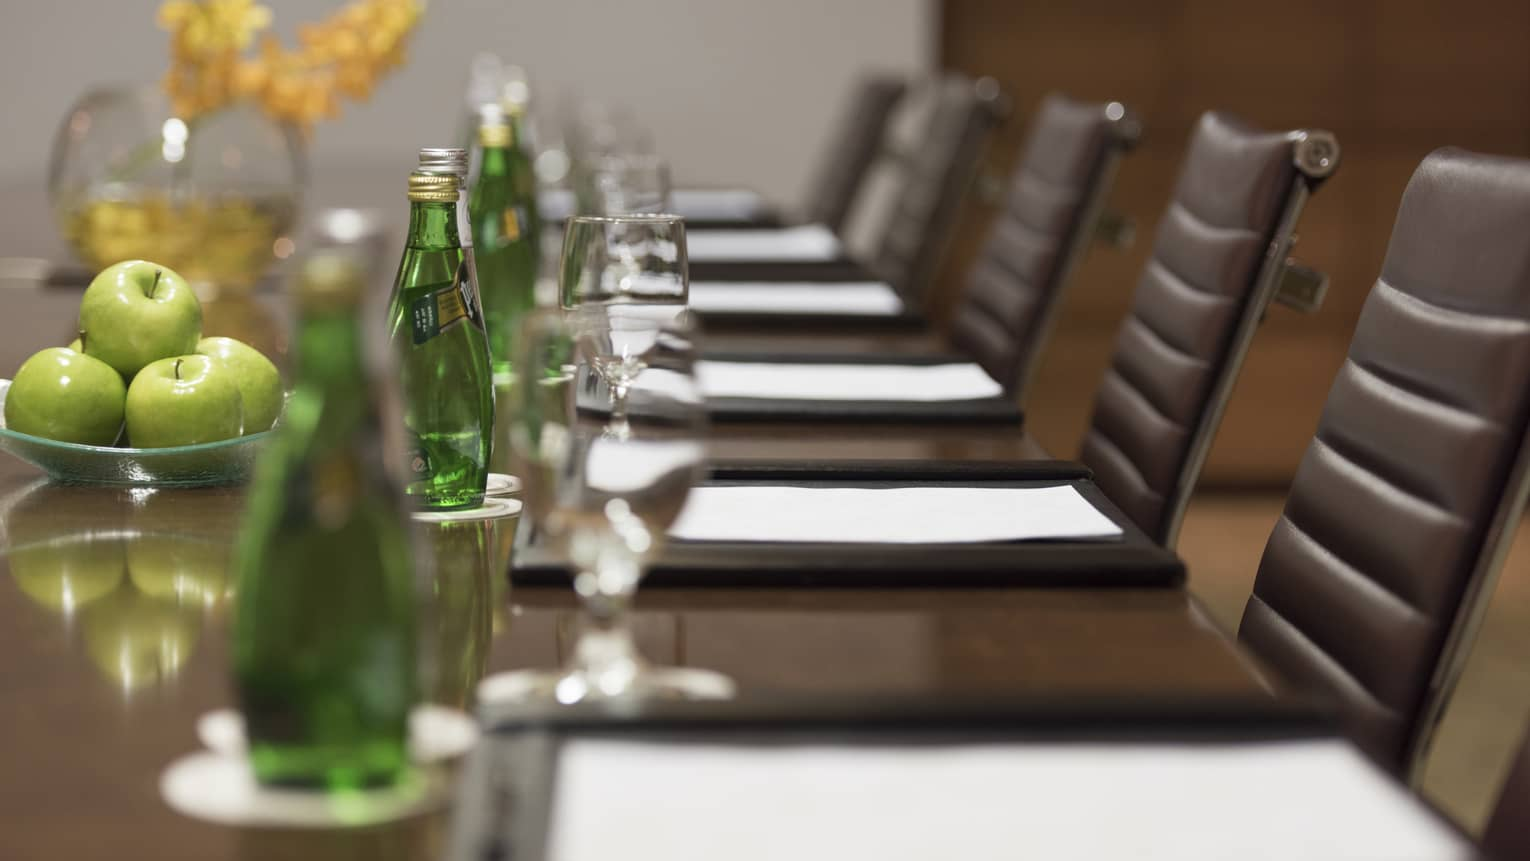 Close-up of business meeting table row of chairs, paper agendas, green glass bottles, apples